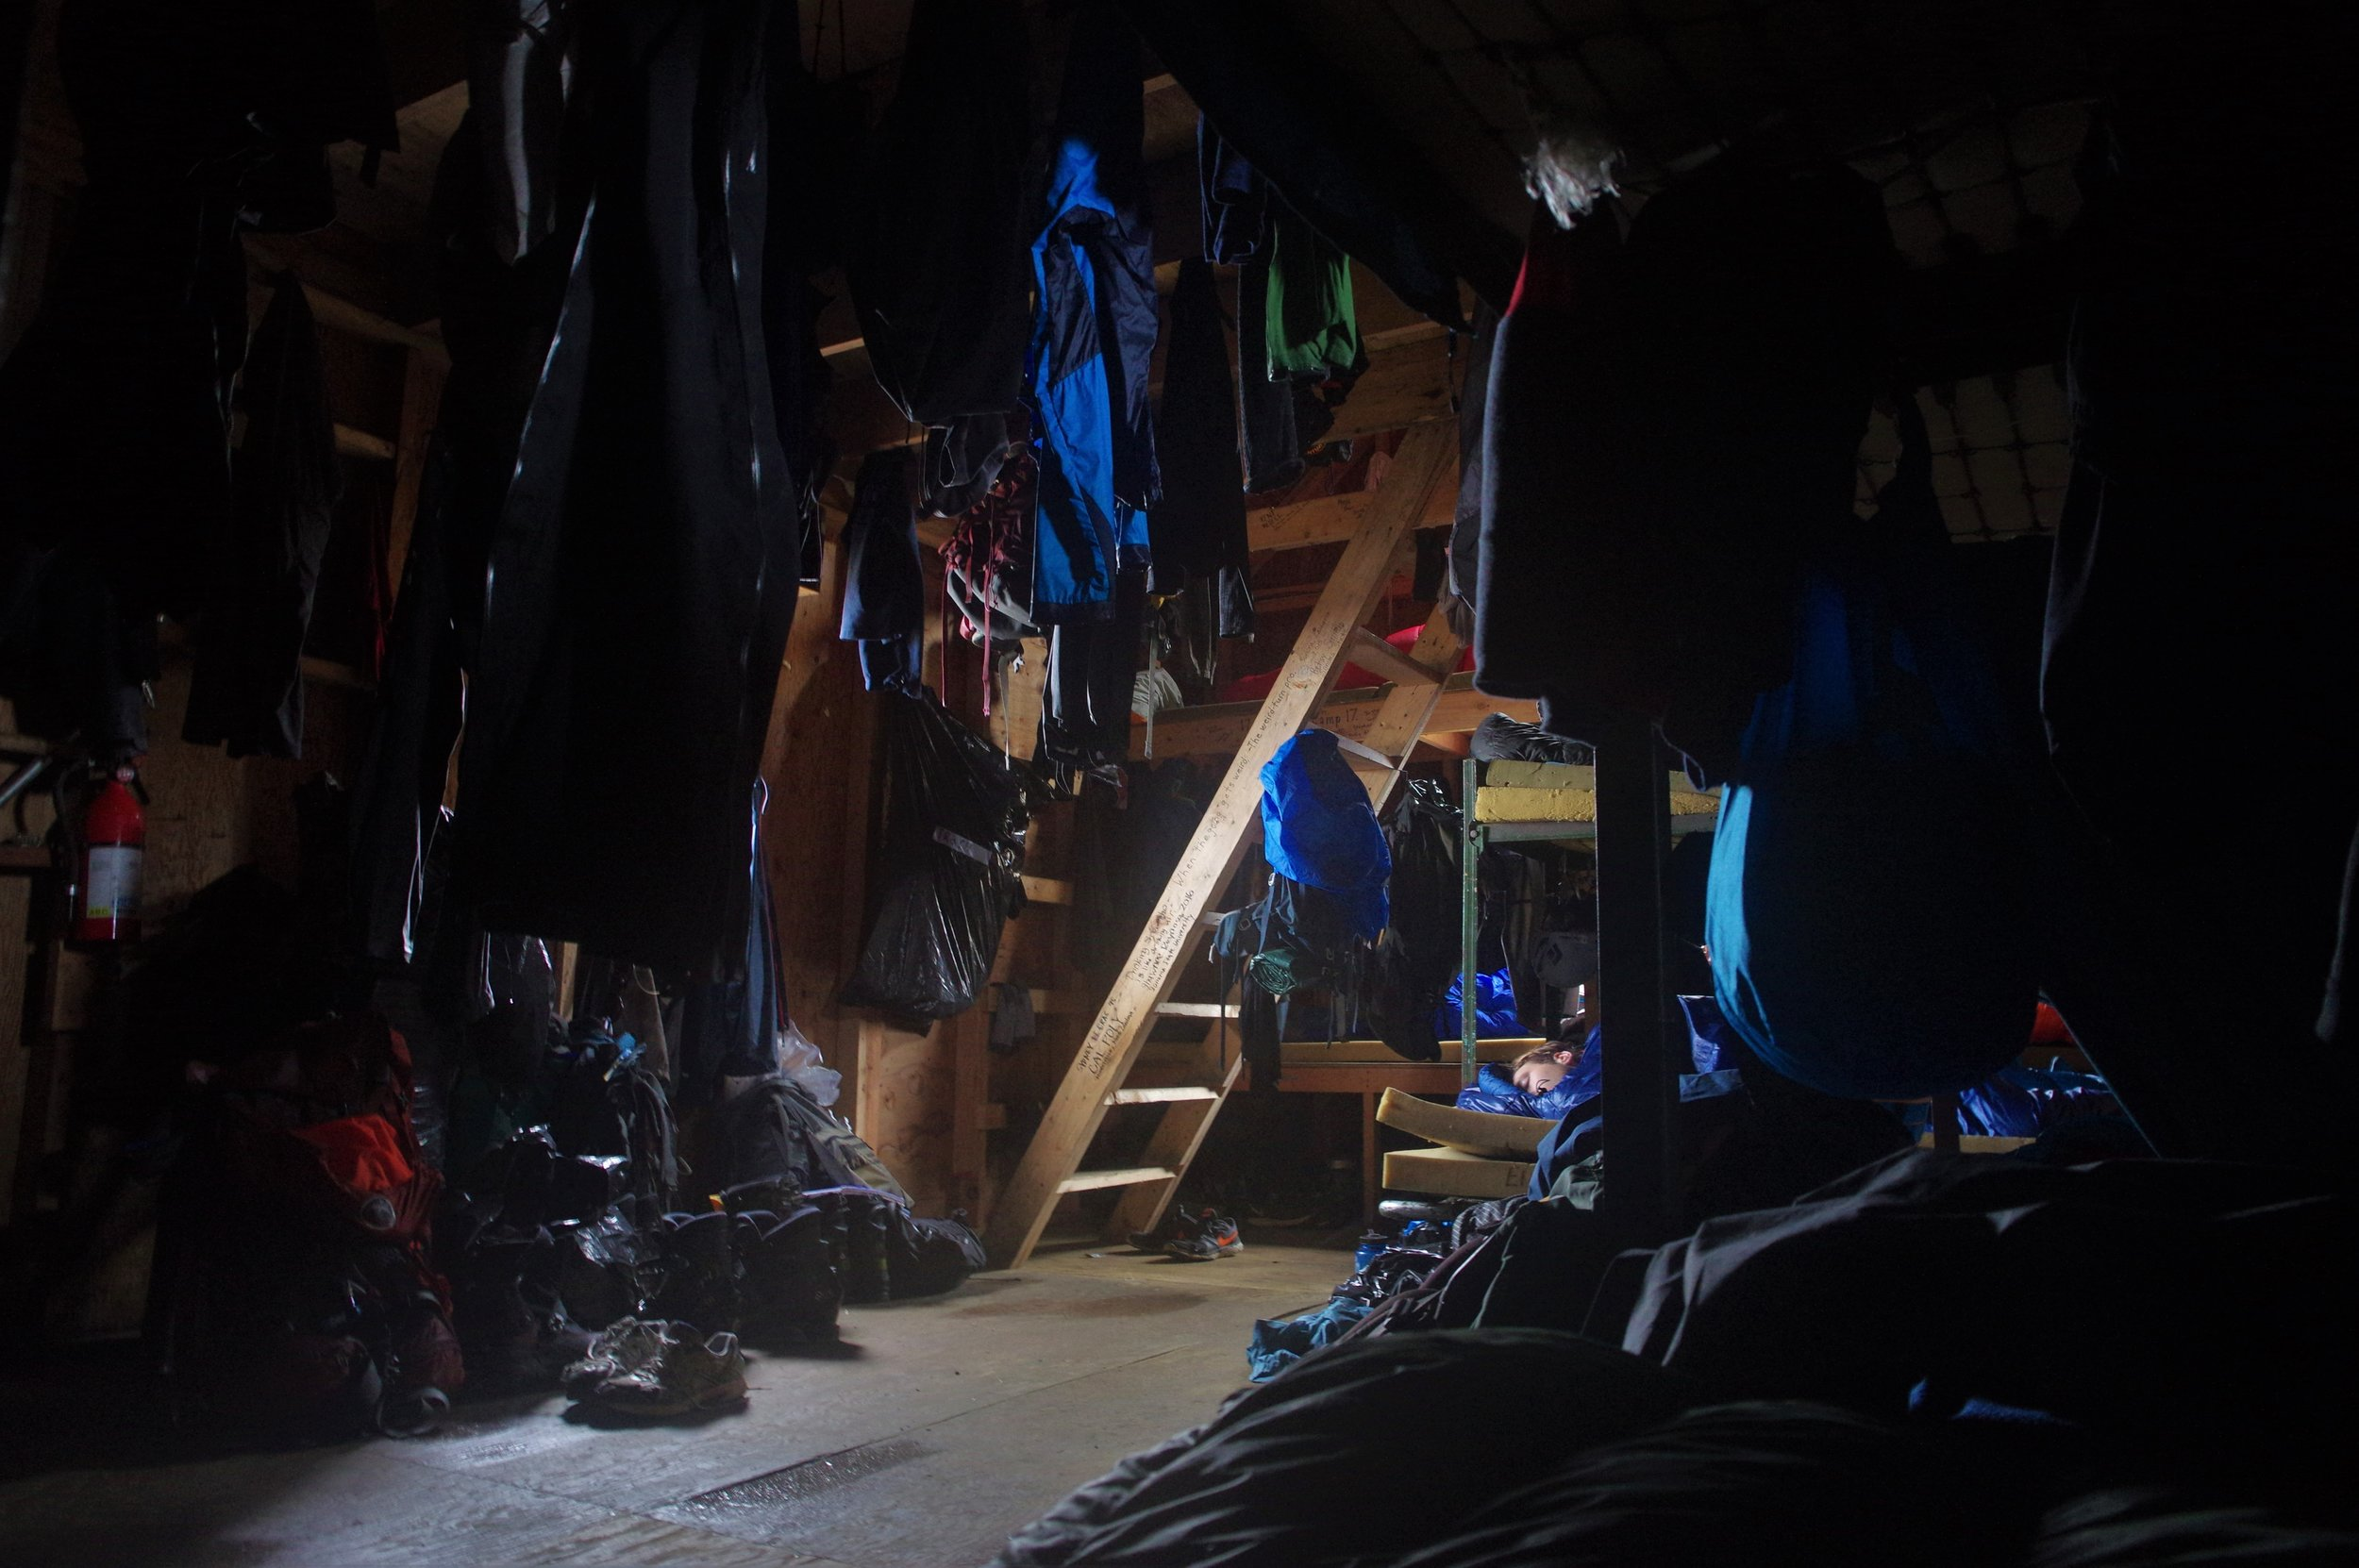 The inside of the Armpit, the domain of the male students. Wet gear hanging from the rafters makes for close quarters. Photo: Daniel Otto.